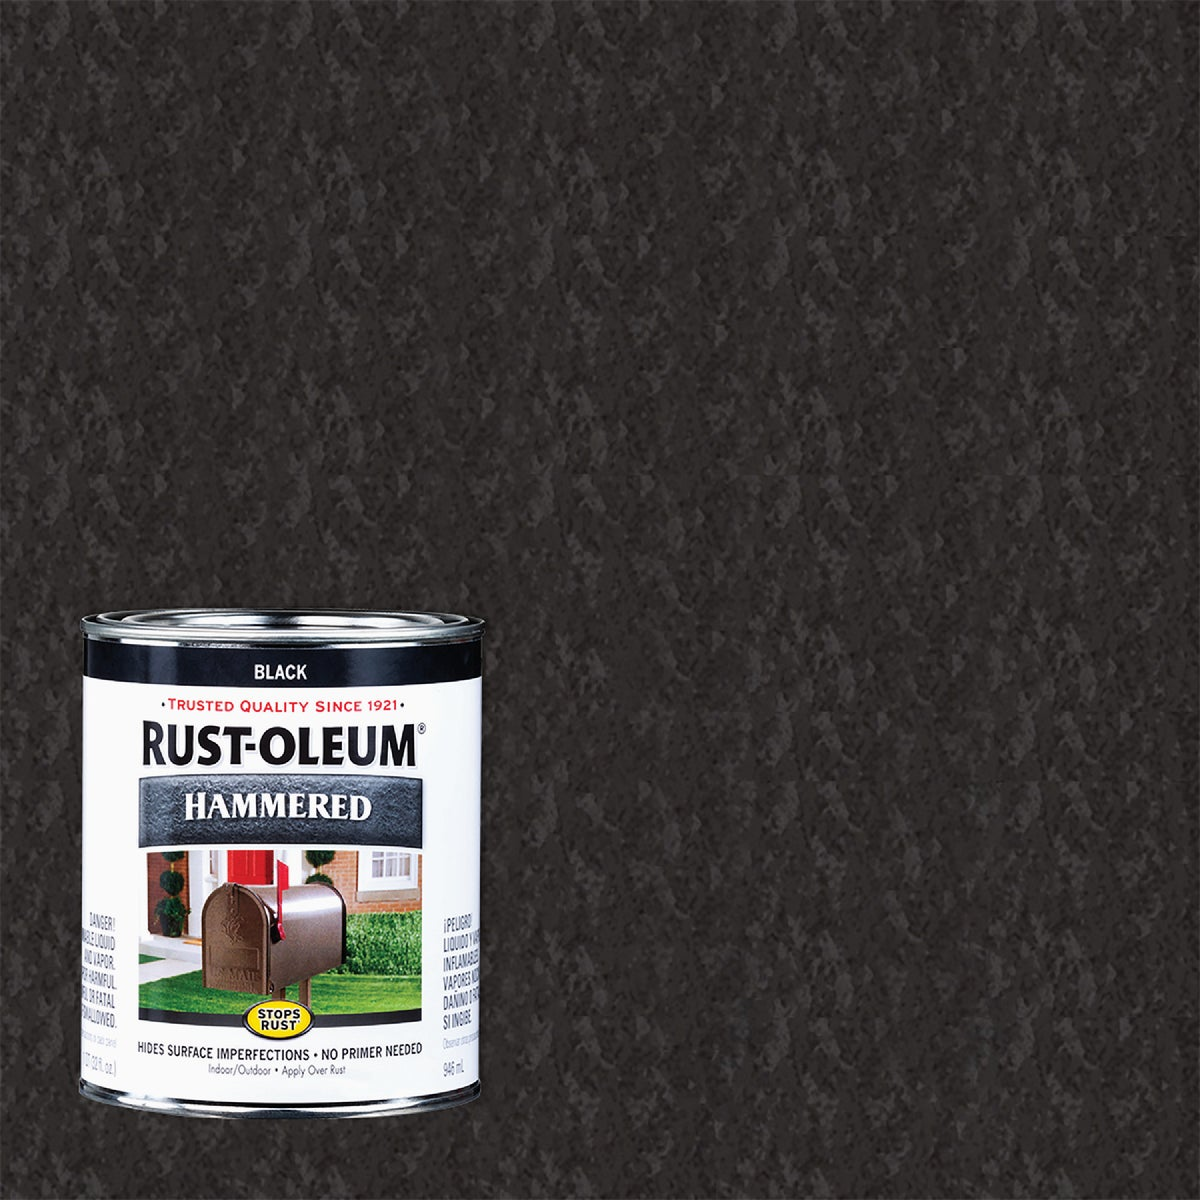 BLACK HAMMERED PAINT - 7215-502 by Rustoleum